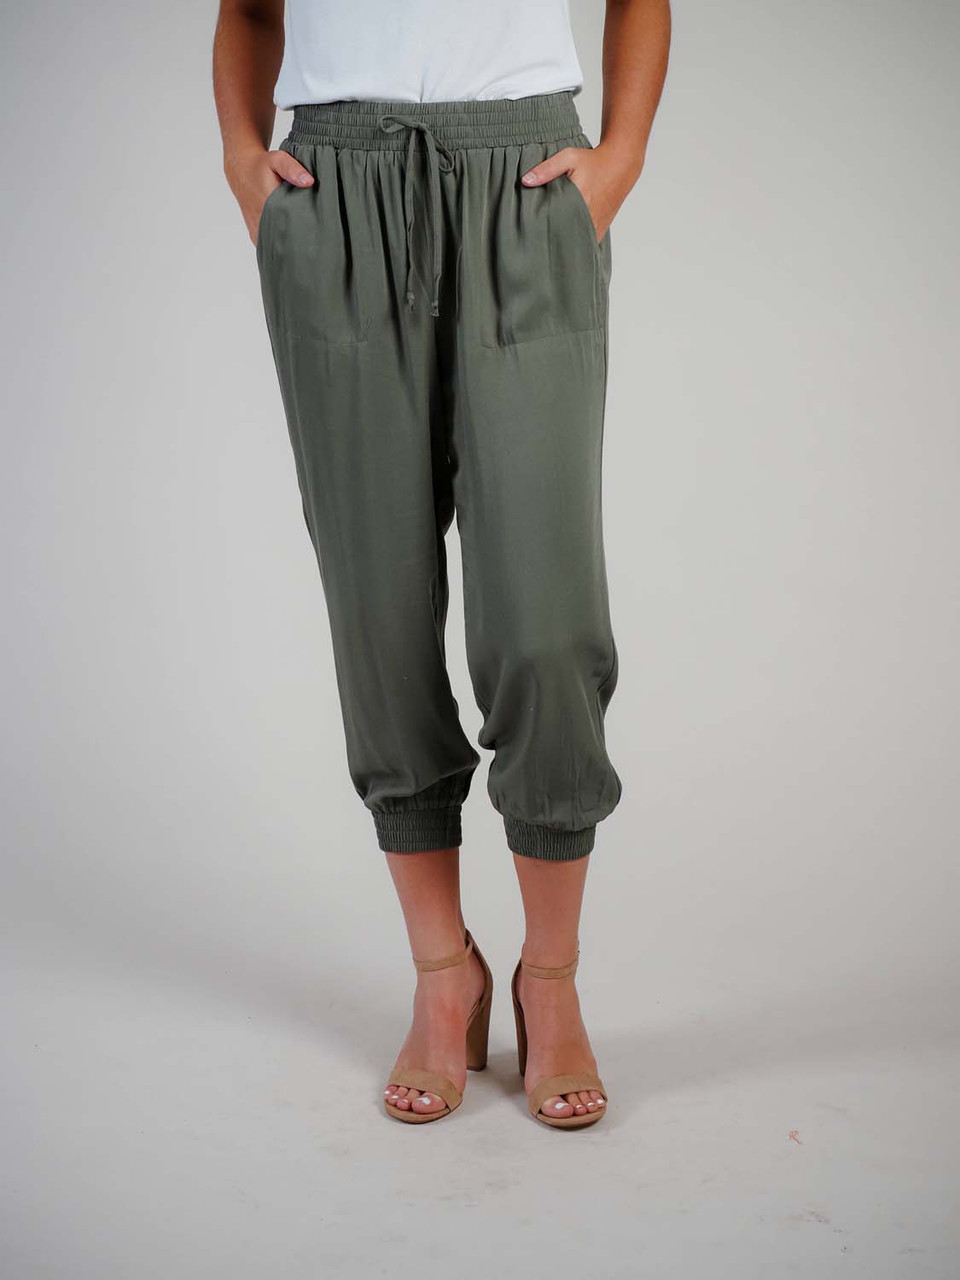 olive jogger pants with pockets